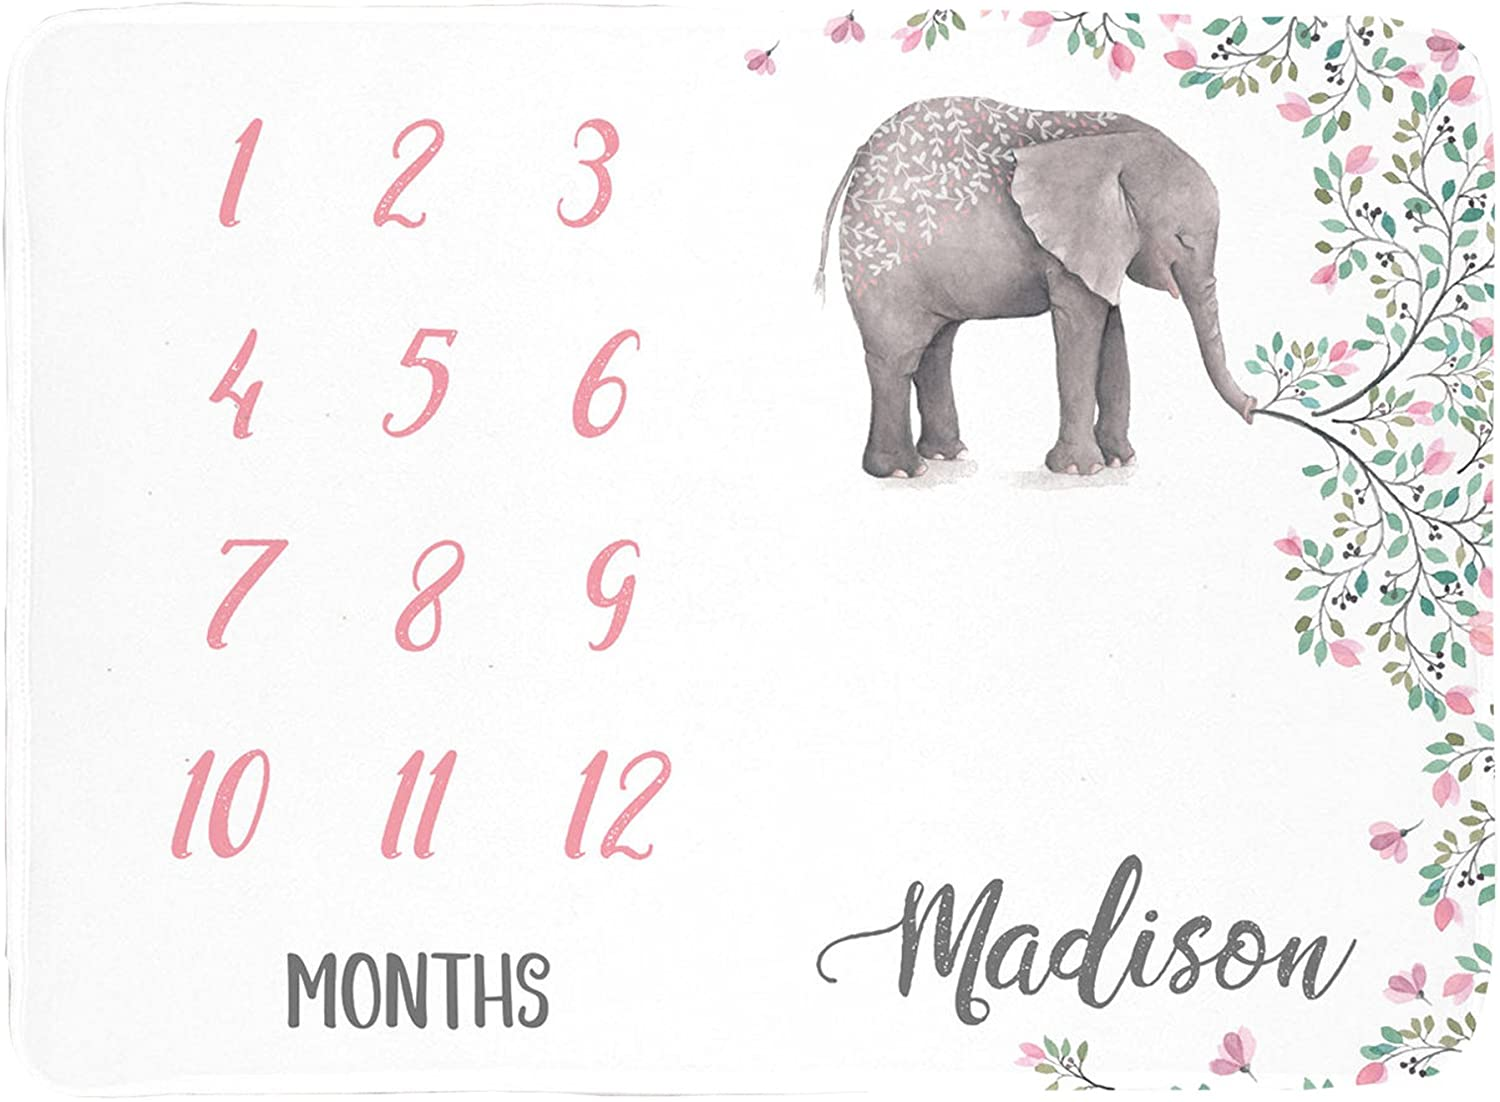 Sobilar Personalized Elephants Baby Month Blanket - Track Baby's Growth, Customized with Baby's Name